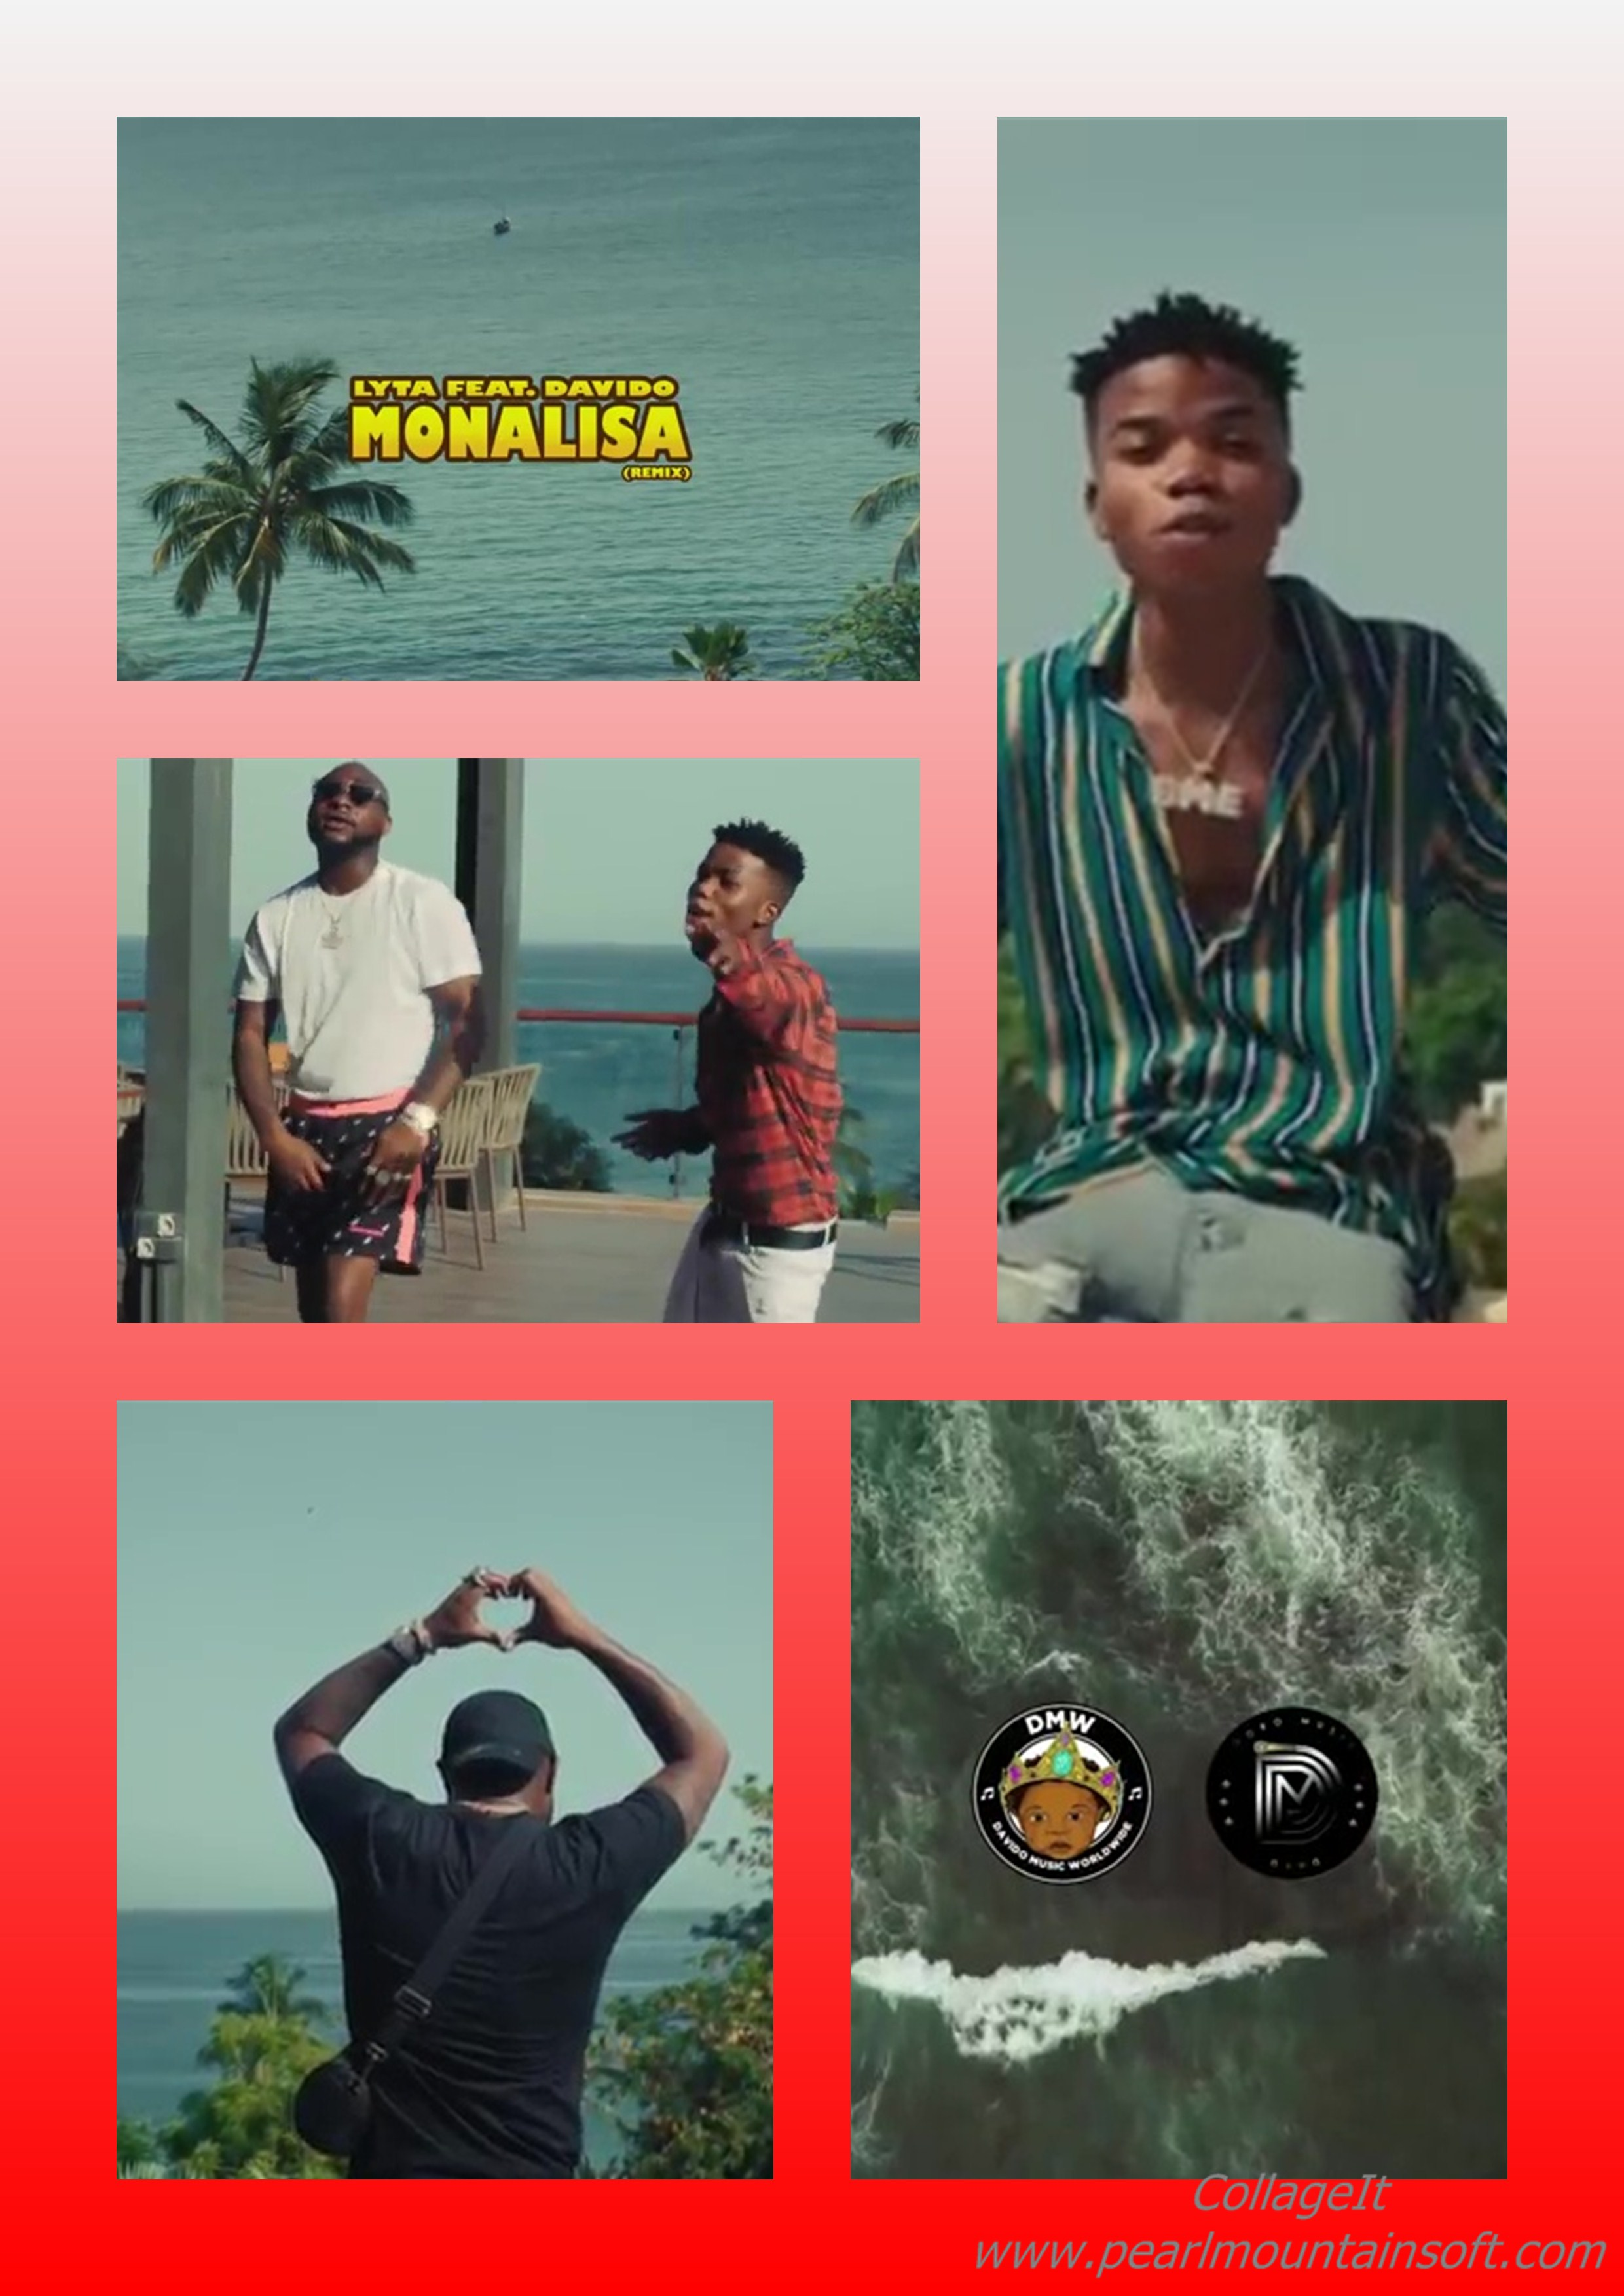 "(+LYRICS+TRANSLATION+MEANING) MUSIC REVIEW:MONALISA BY LYTA FT DAVIDO ""THIS LYTA LOOKS LIKE"